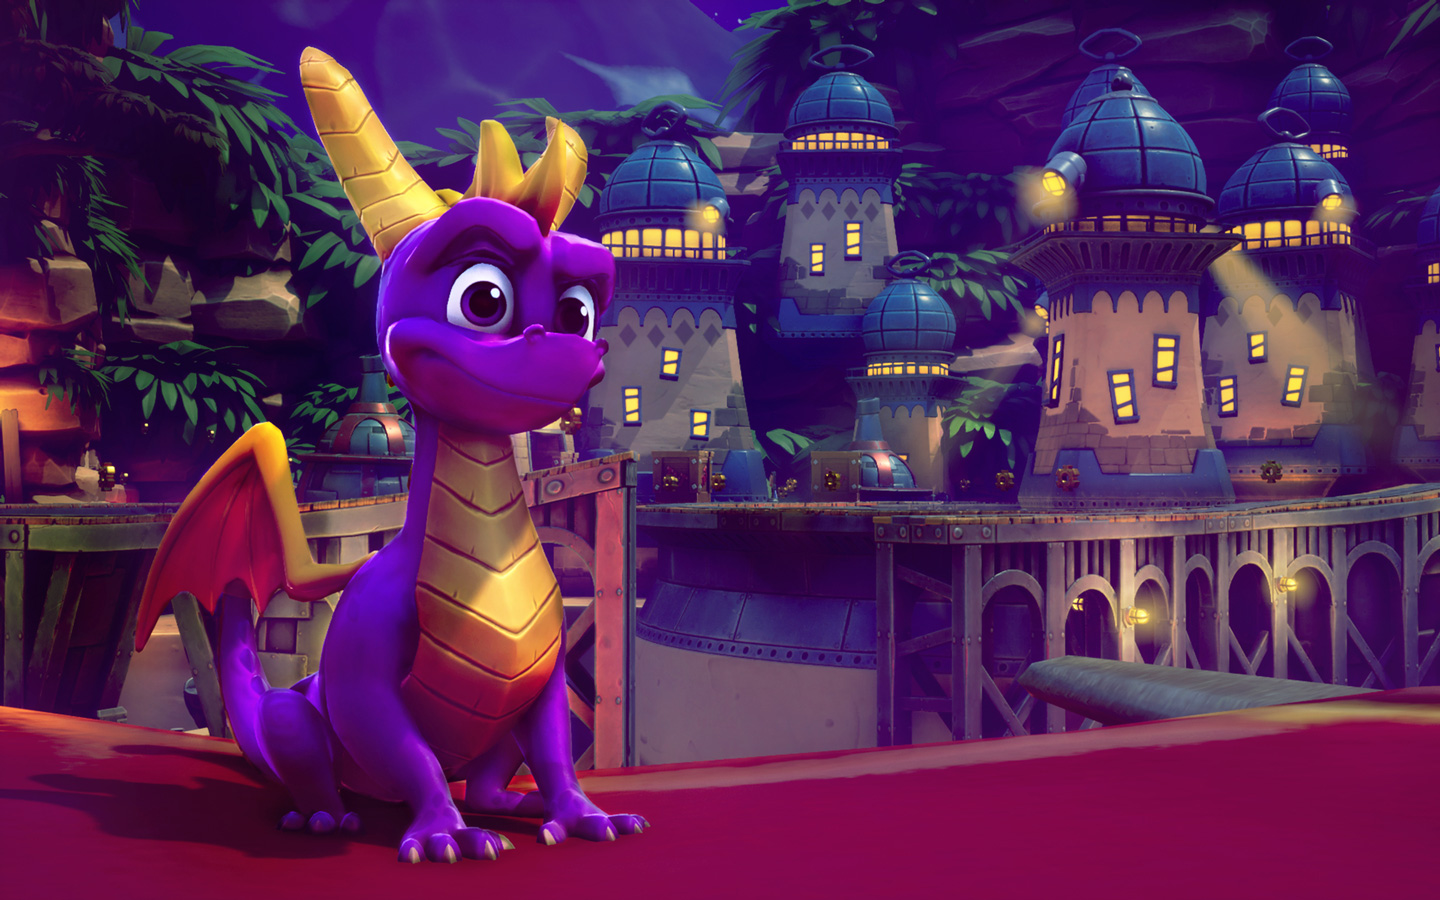 Spyro the Dragon Wallpaper in 1440x900